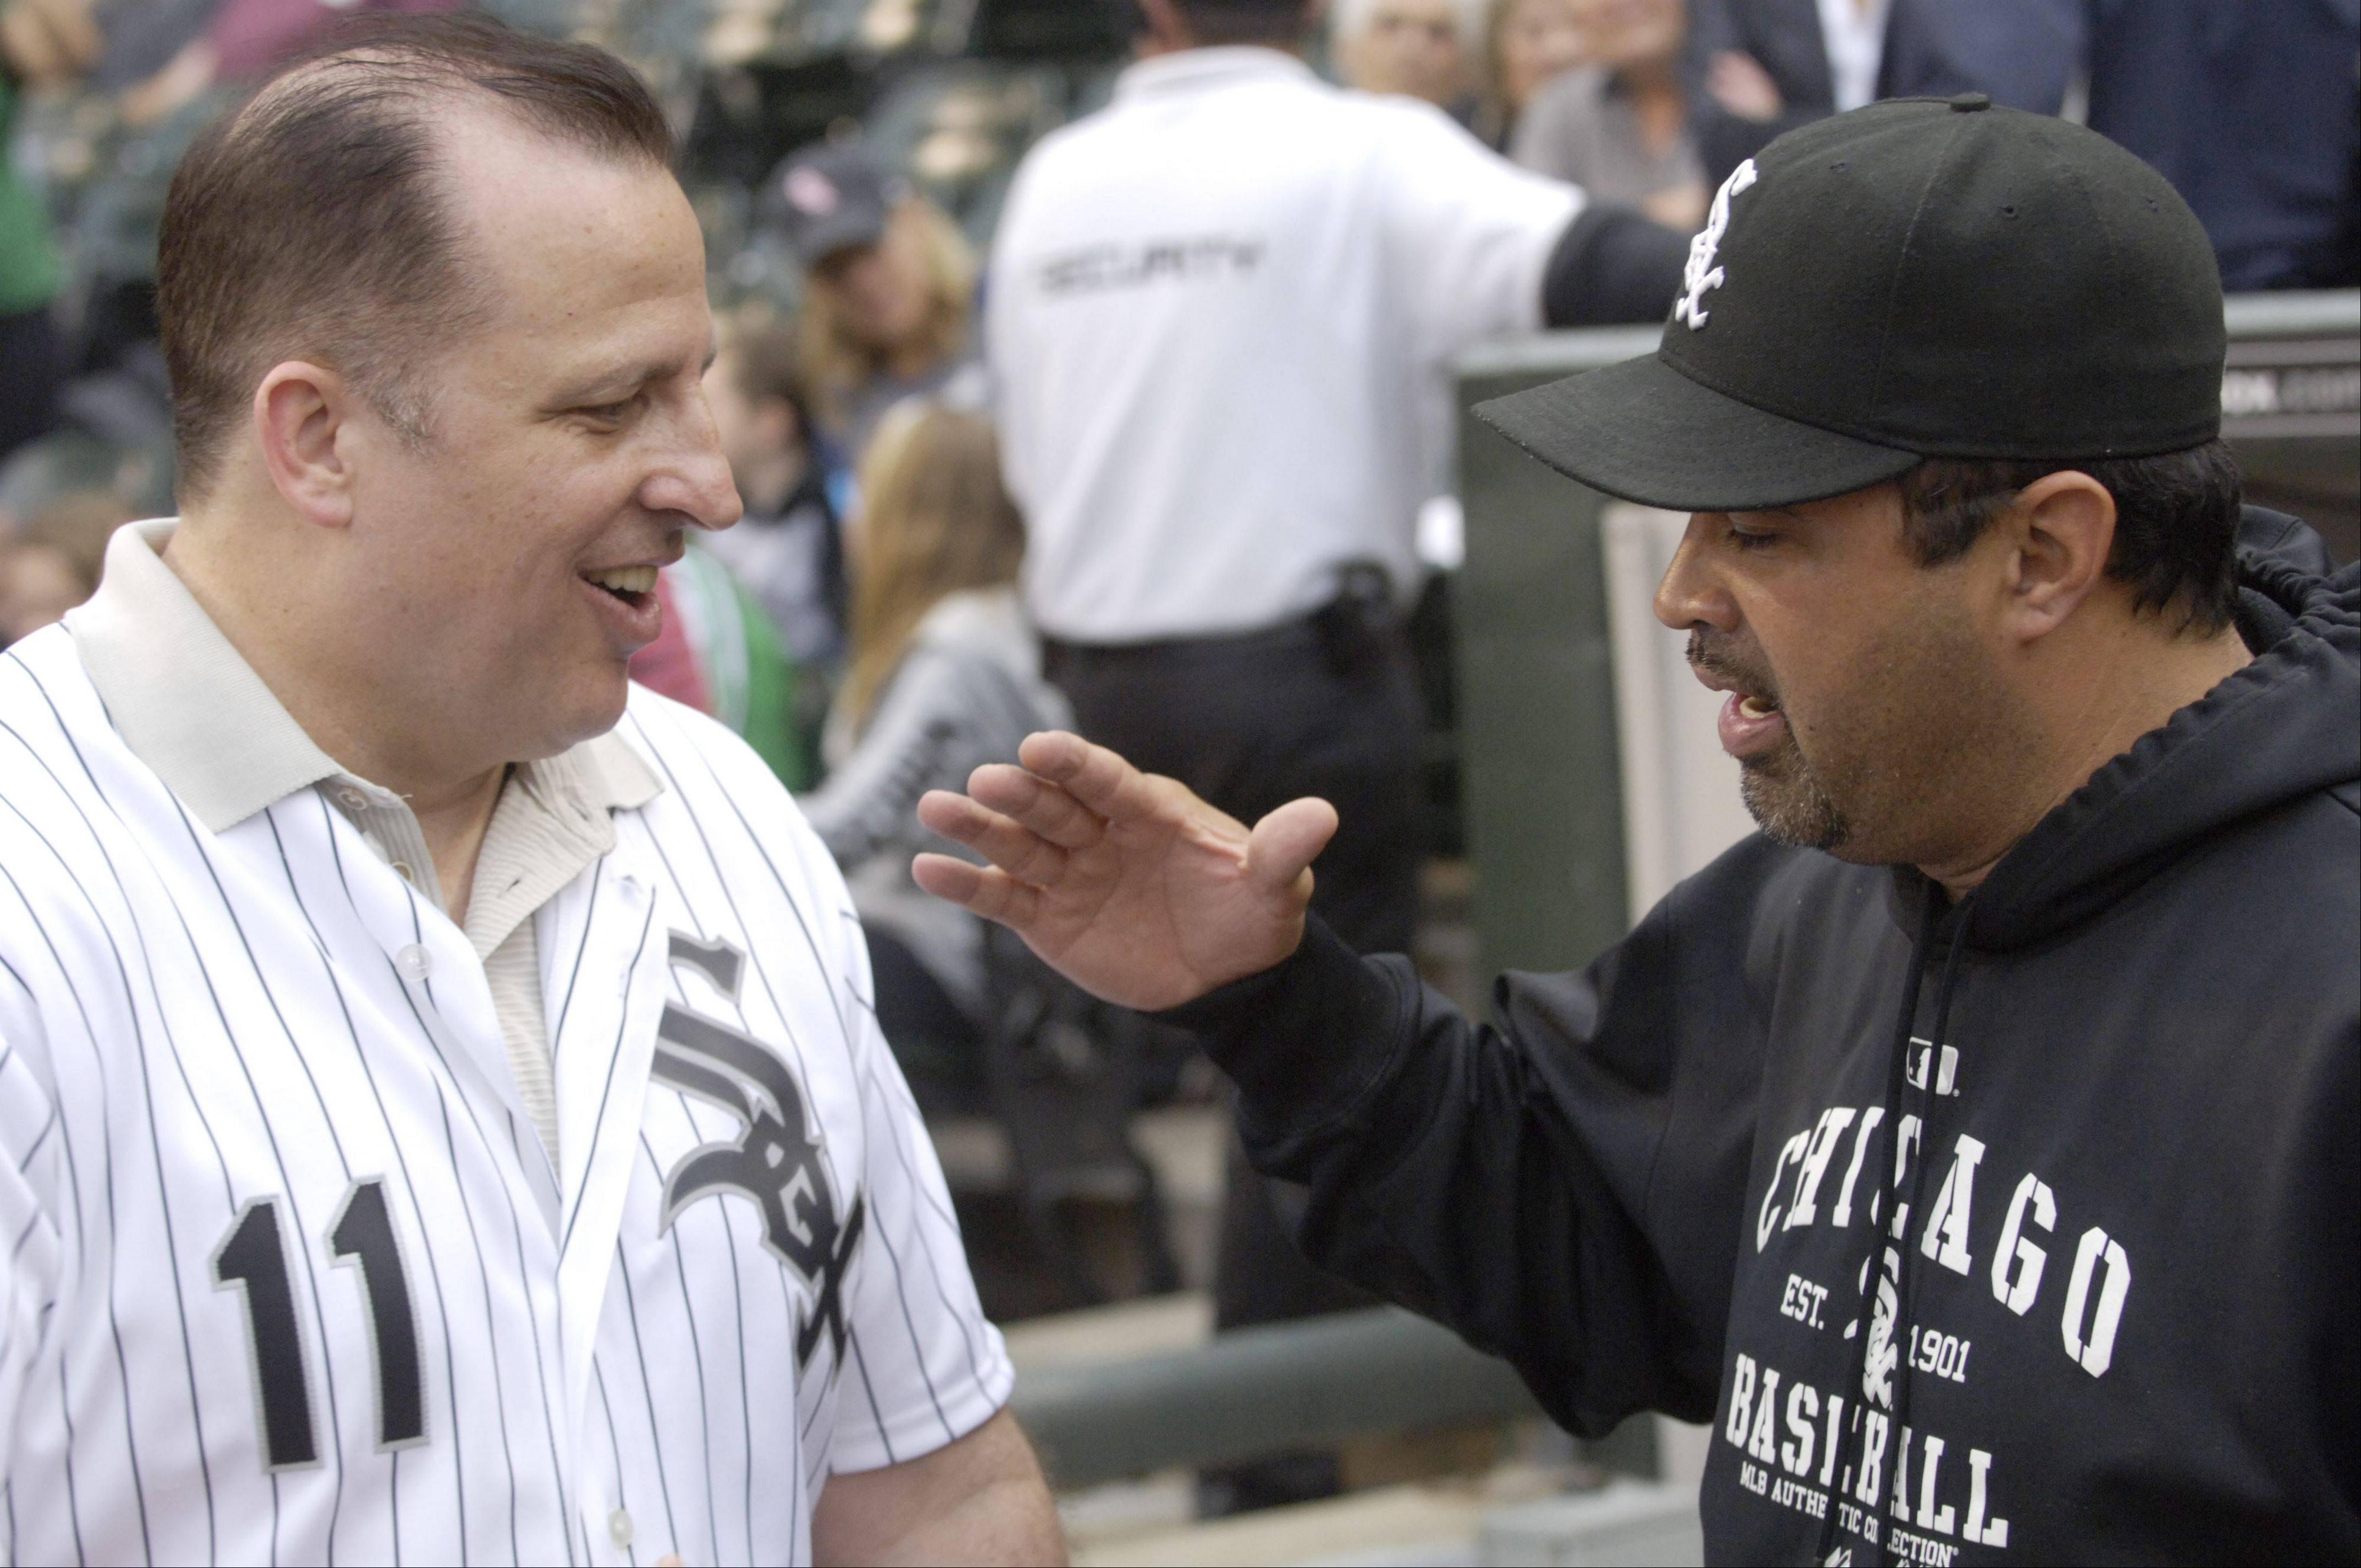 Chicago Bulls coach Tom Thibodeau chats with White Sox Manager Ozzie Guillen prior to Wednesday's game at U.S. Cellular Field.